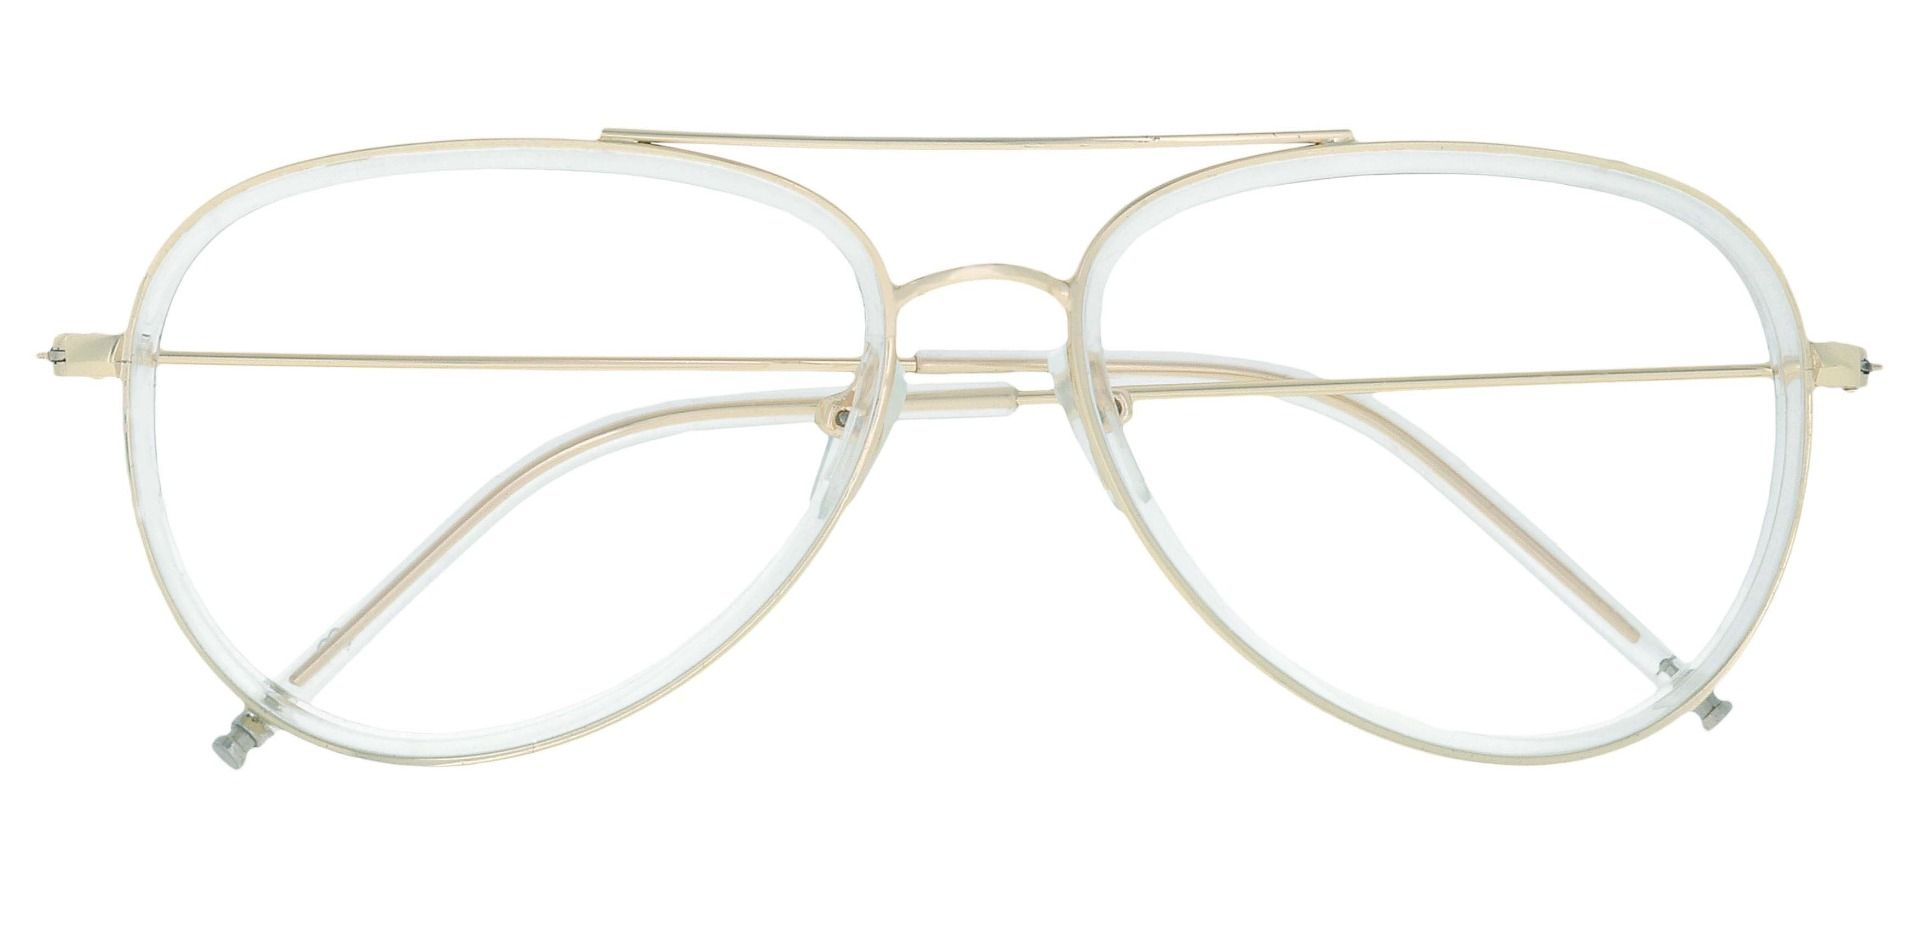 Ace Aviator Reading Glasses - Yellow